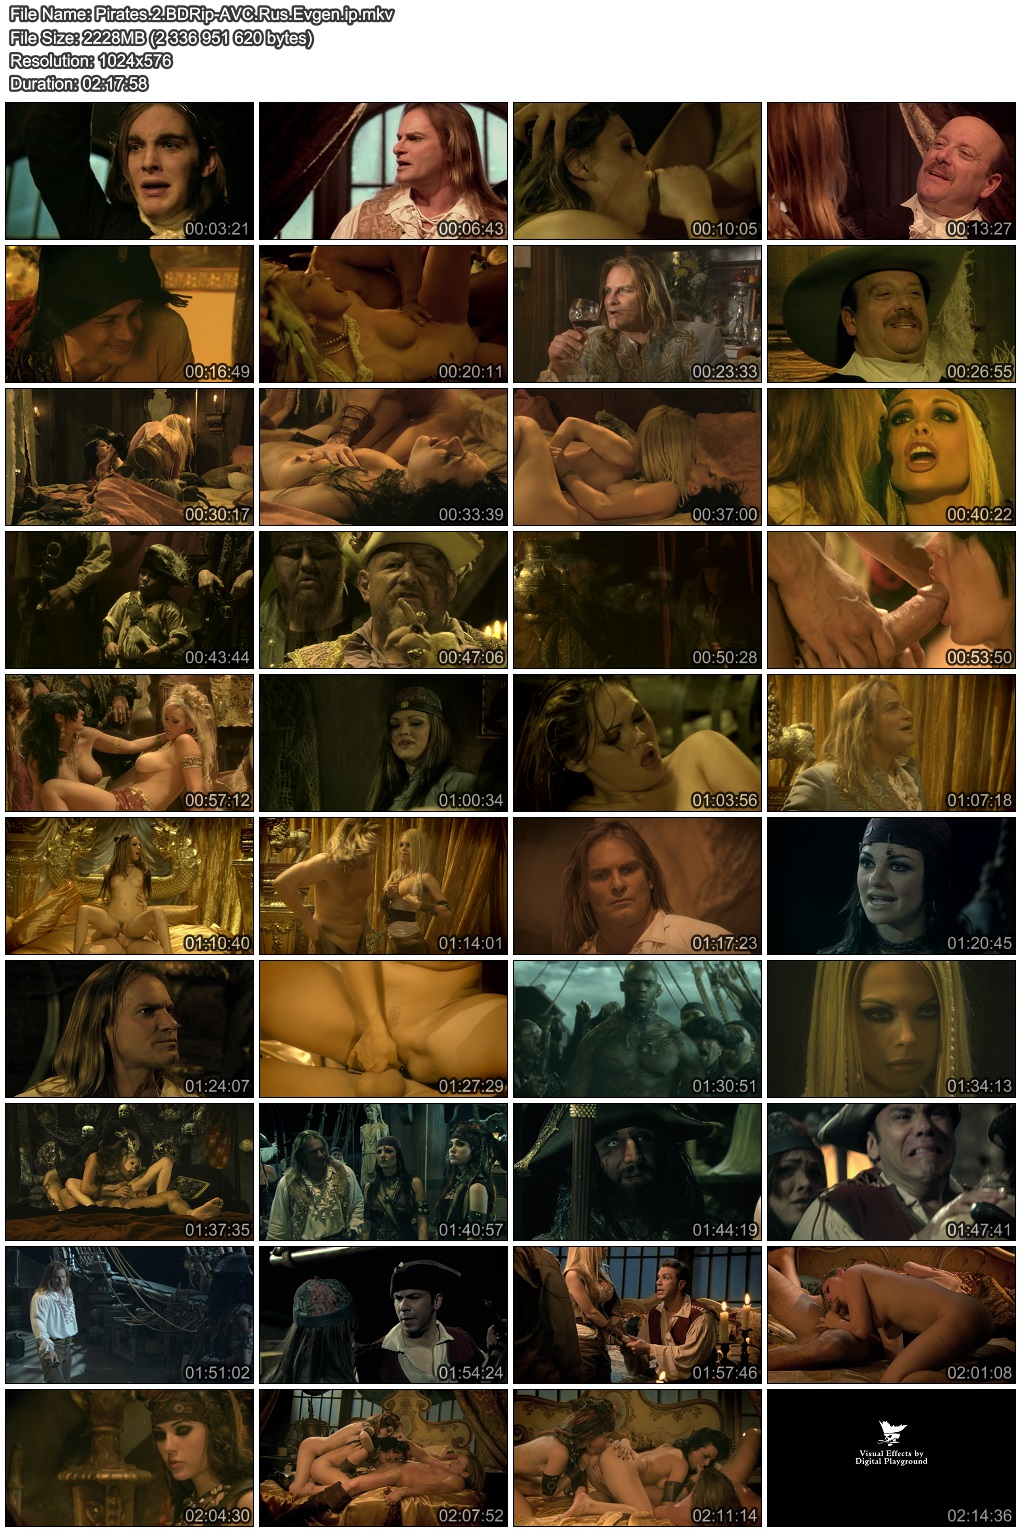 Pirates film sex download videos fucked photo